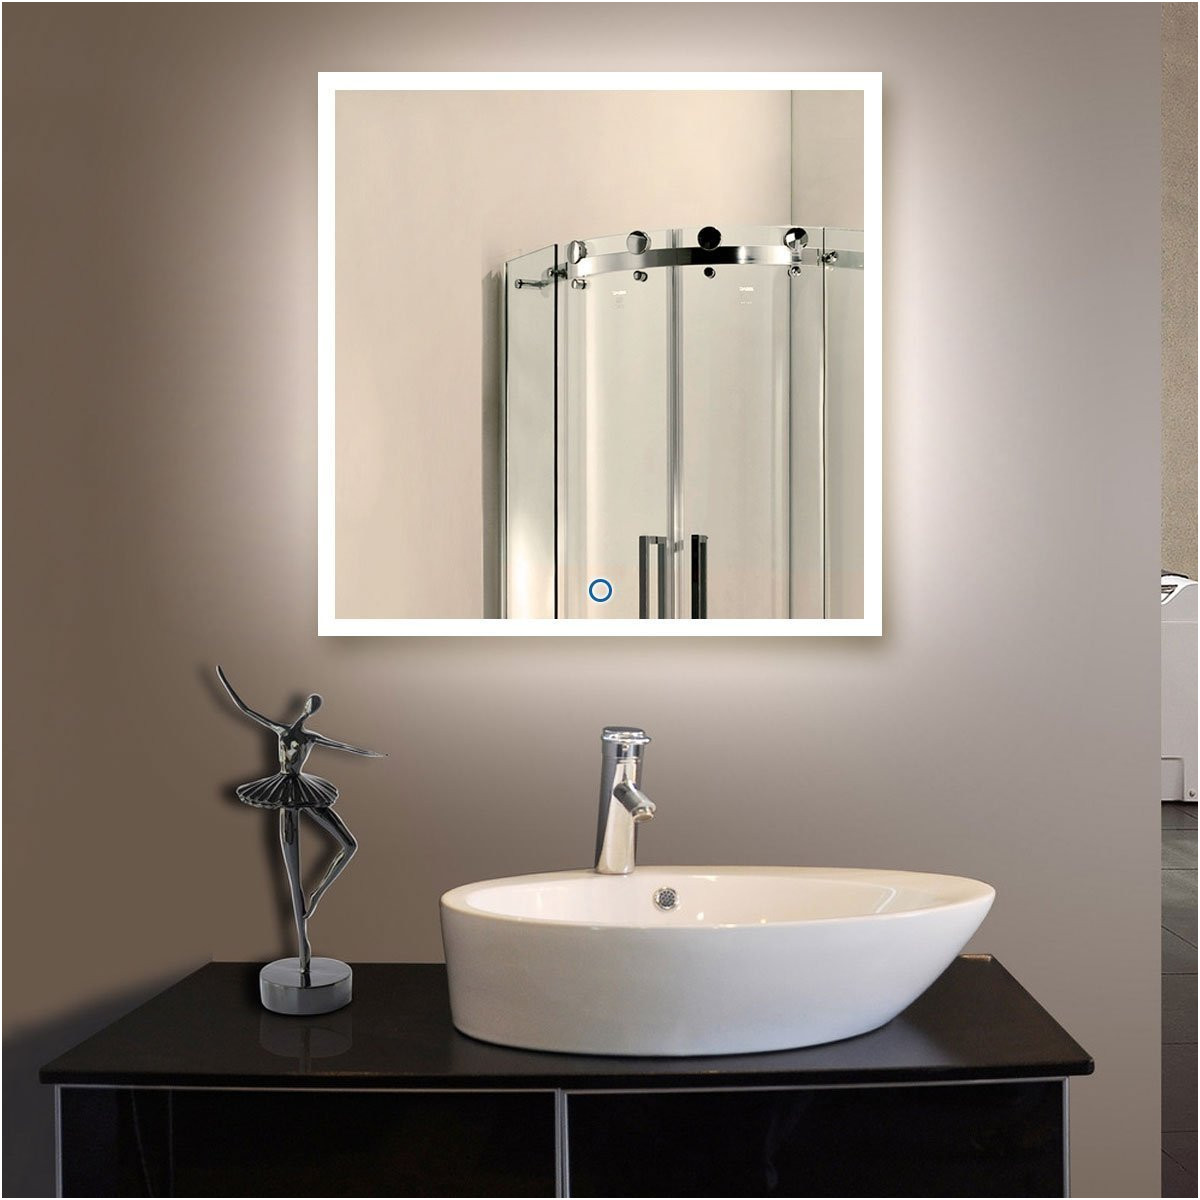 New Illuminated Bathroom Mirrors with Bluetooth